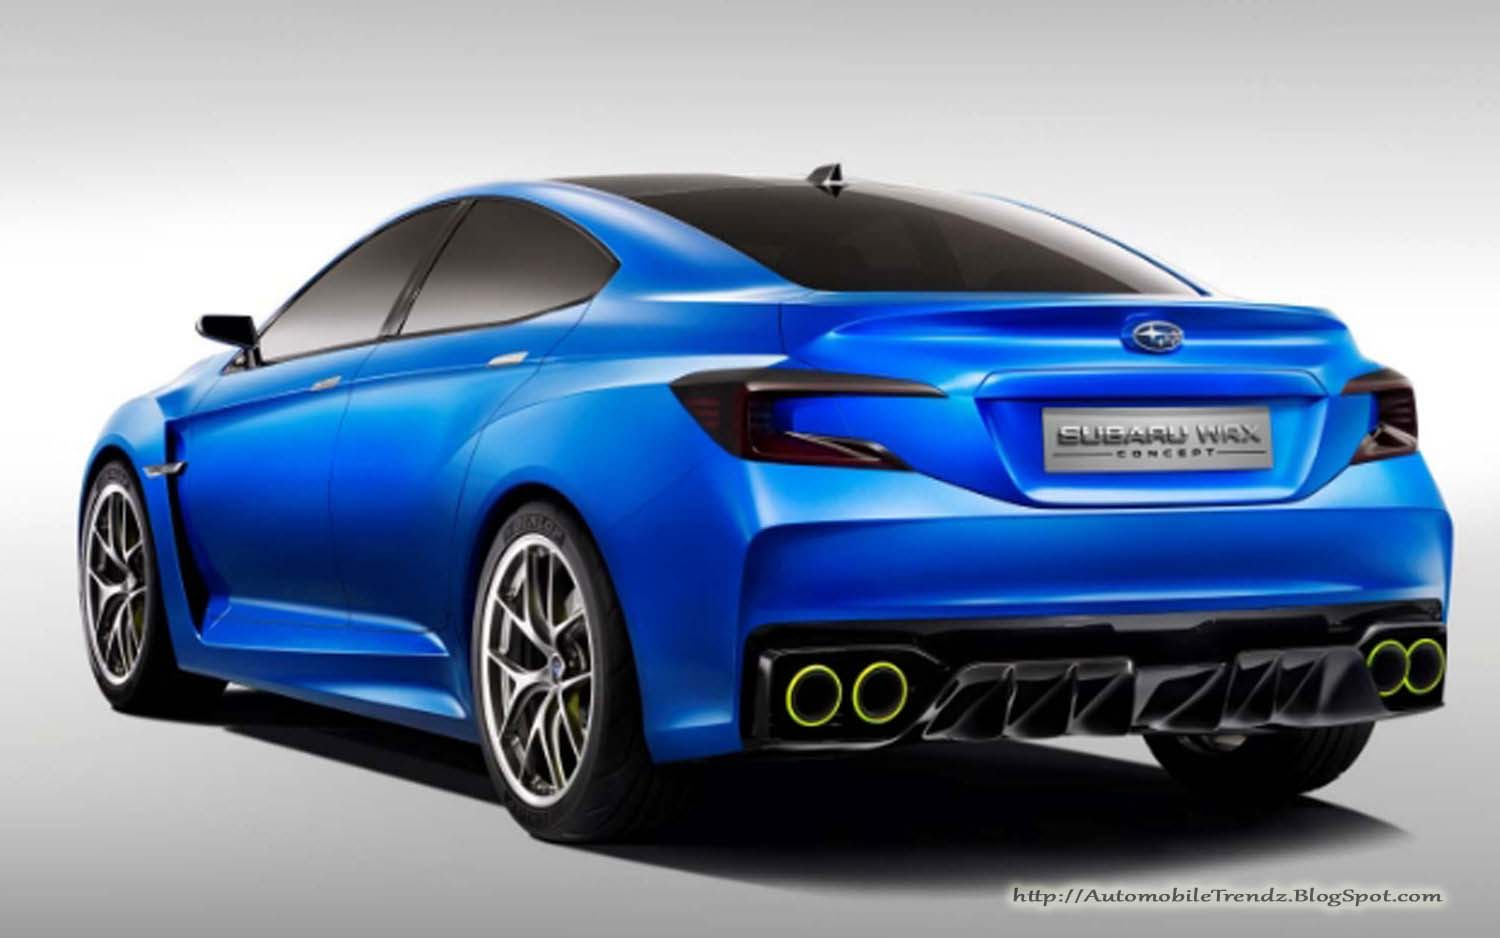 automobile trendz 2014 subaru impreza wrx concept 6 pictures. Black Bedroom Furniture Sets. Home Design Ideas